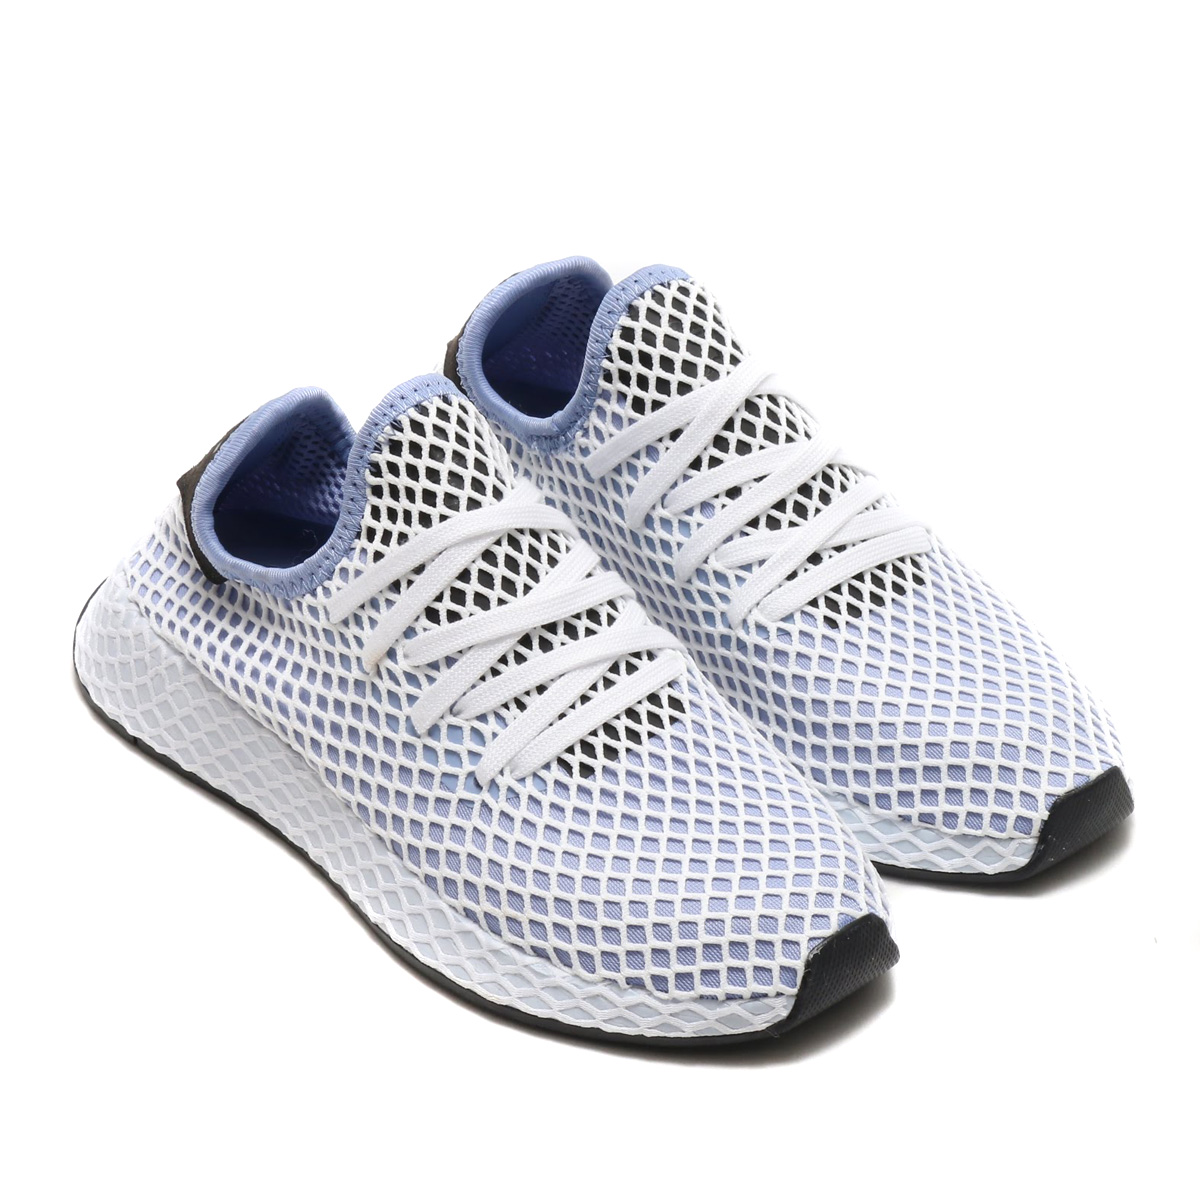 brand new 2690c aa35c adidas Originals DEERUPT RUNNER W (アディダスオリジナルスディーラプトランナー W) (chalk blue  S18 chalk blue S18 core black) 18SS-I